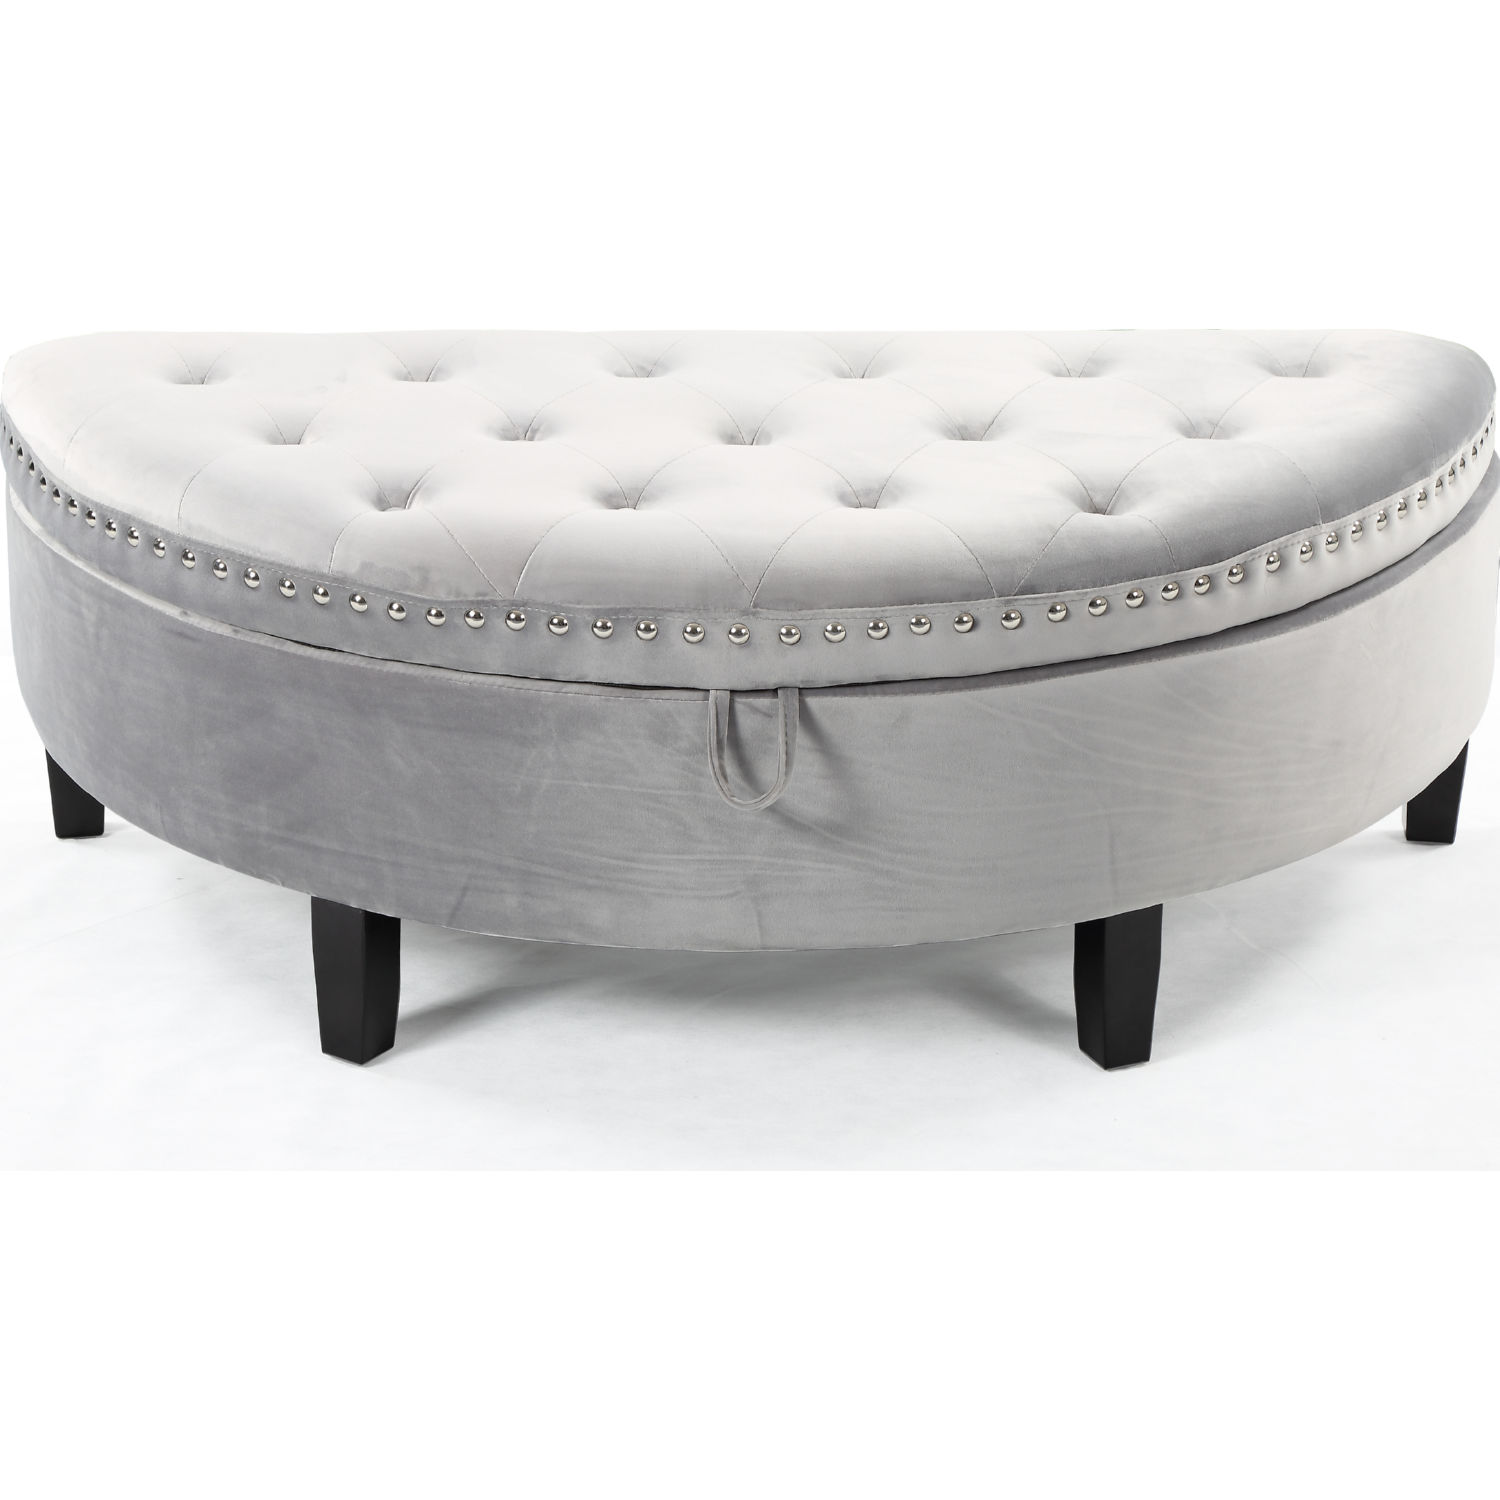 Swell Jacqueline Half Moon Storage Ottoman In Tufted Silver Velvet By Chic Home Beatyapartments Chair Design Images Beatyapartmentscom